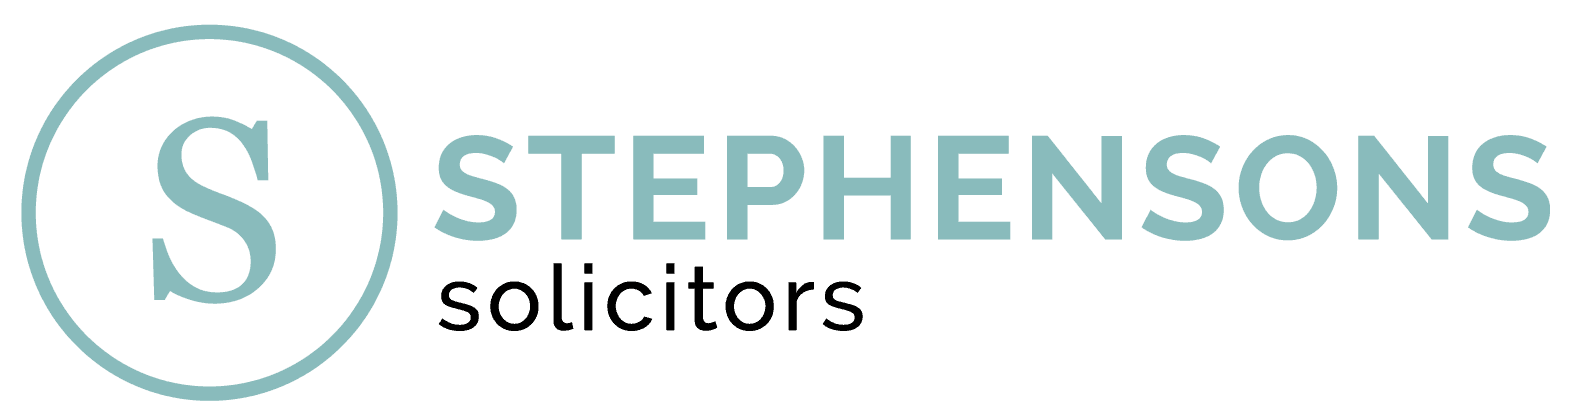 Stephensons Solicitors Logo